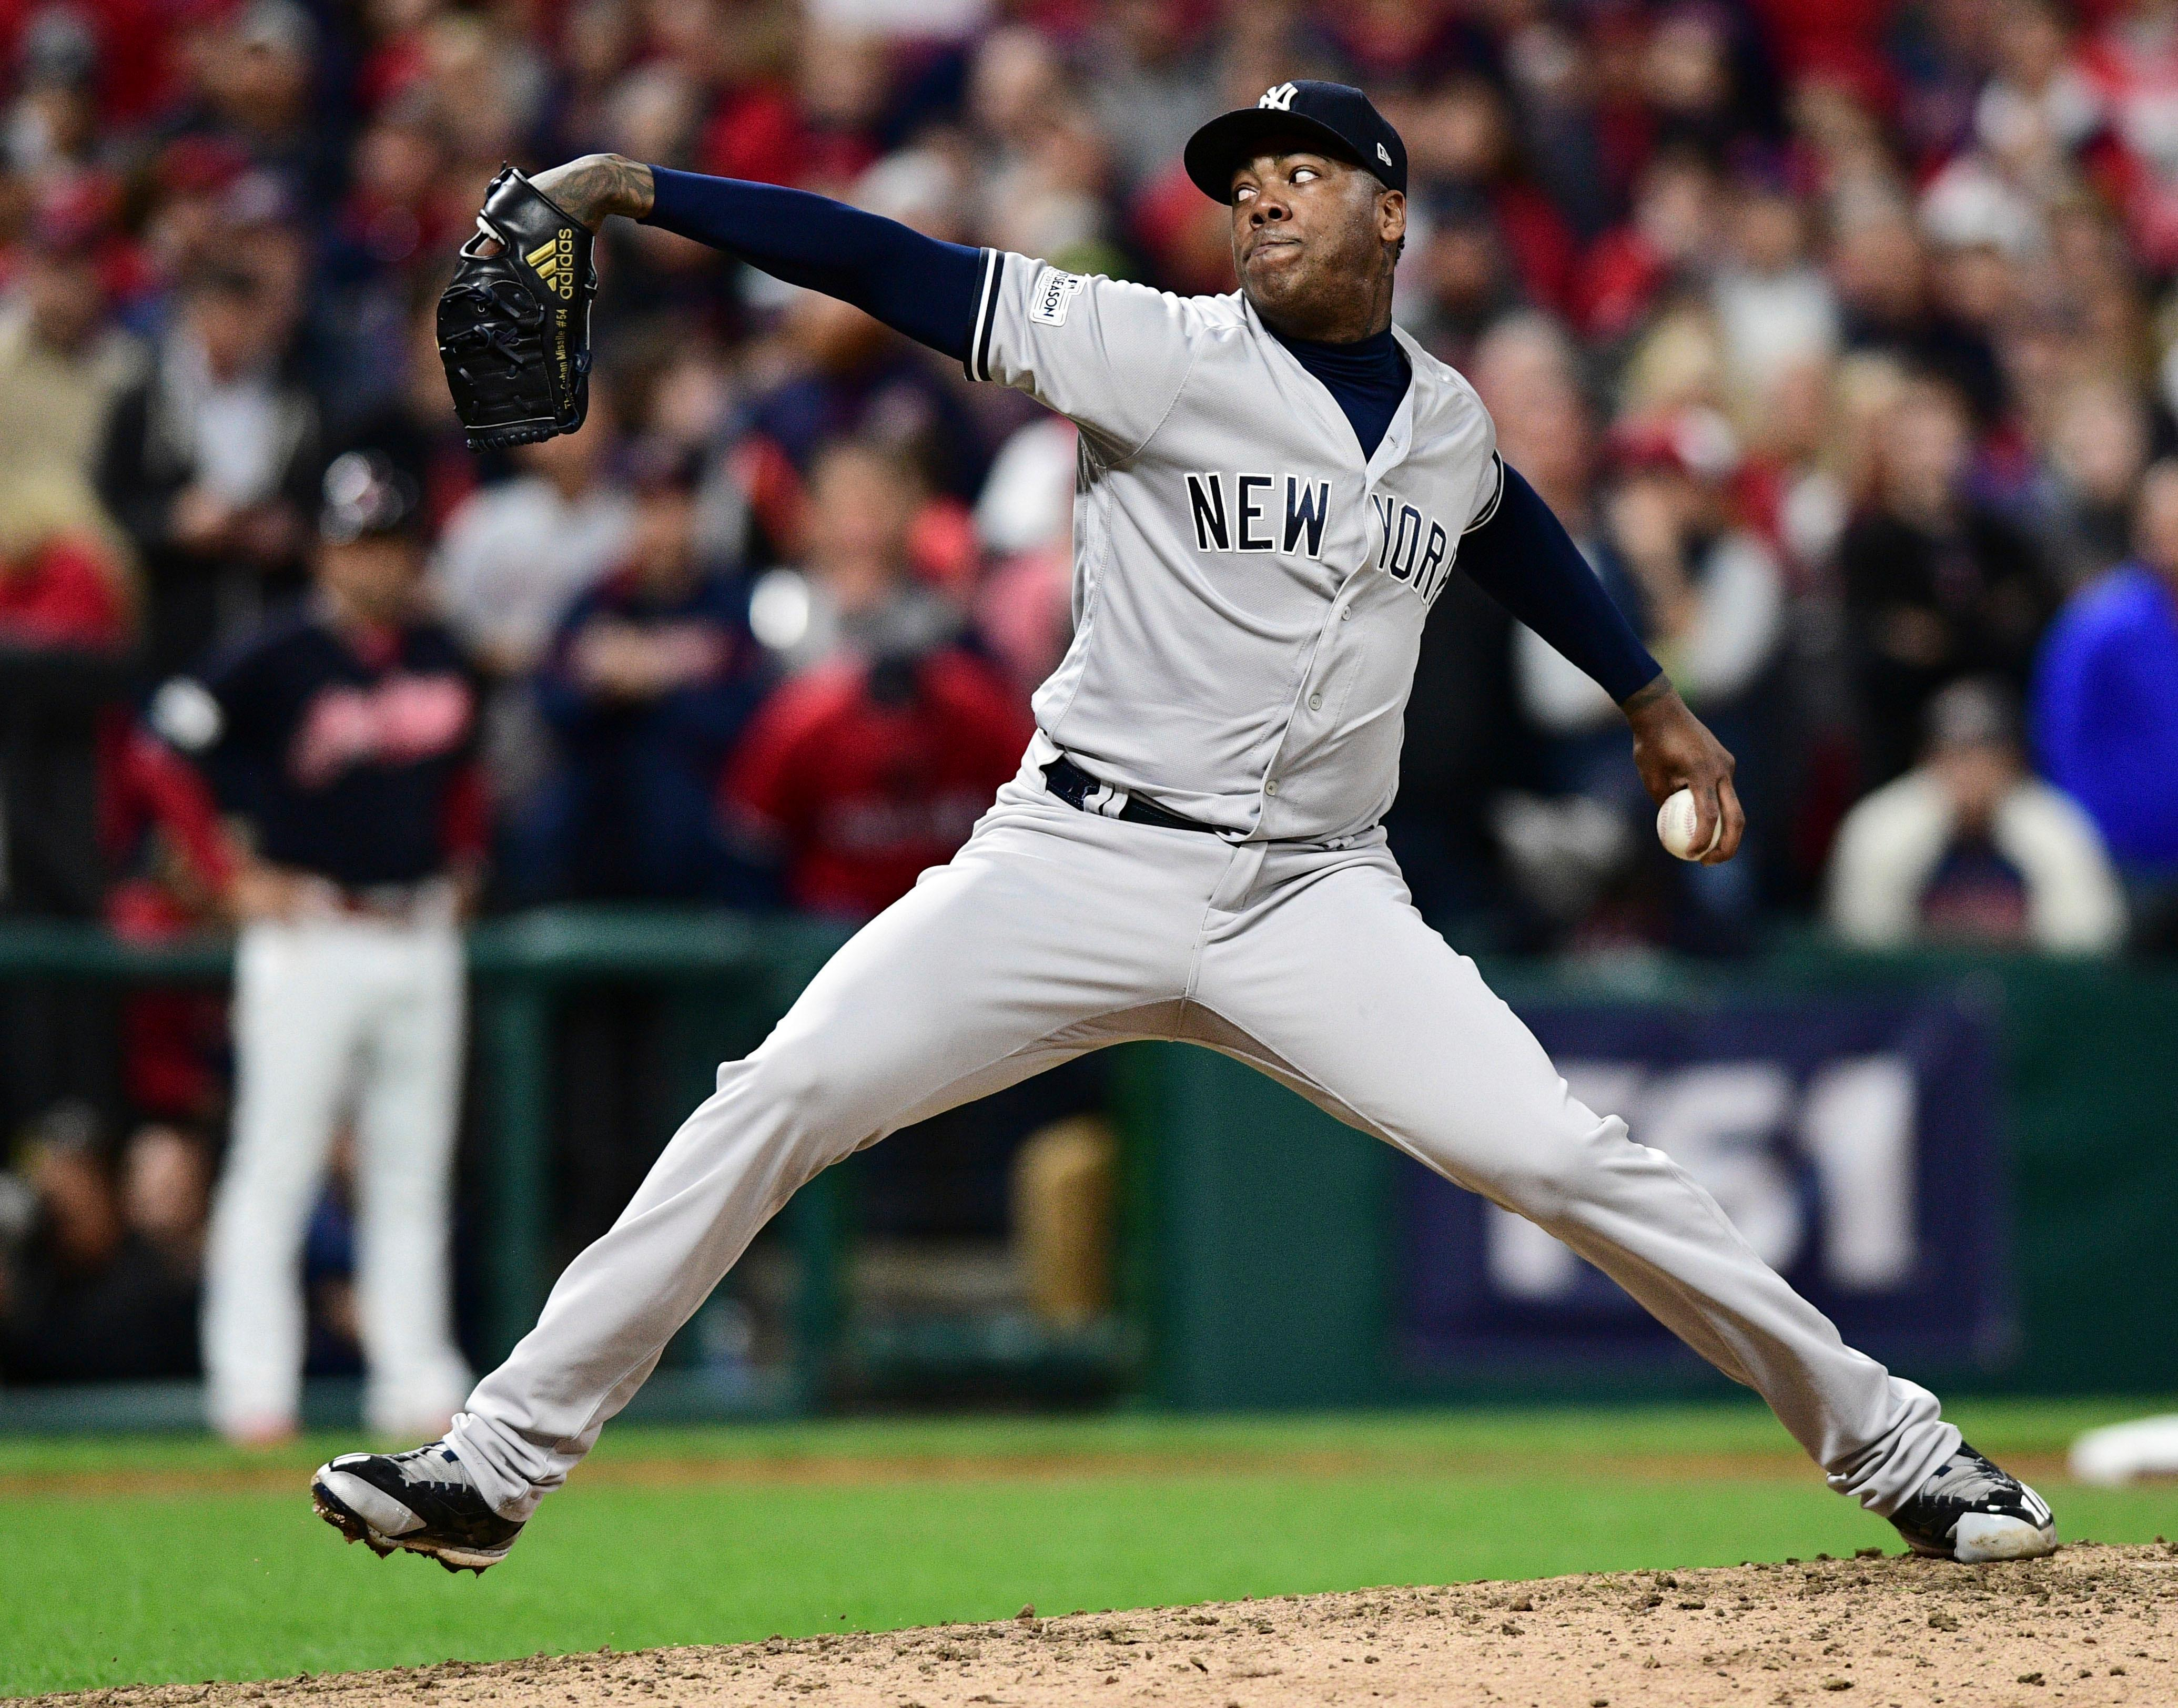 New York Yankees relief pitcher Aroldis Chapman delivers during the eighth inning against the Cleveland Indians in Game 5 of a baseball American League Division Series, Wednesday, Oct. 11, 2017, in Cleveland. (AP Photo/David Dermer)